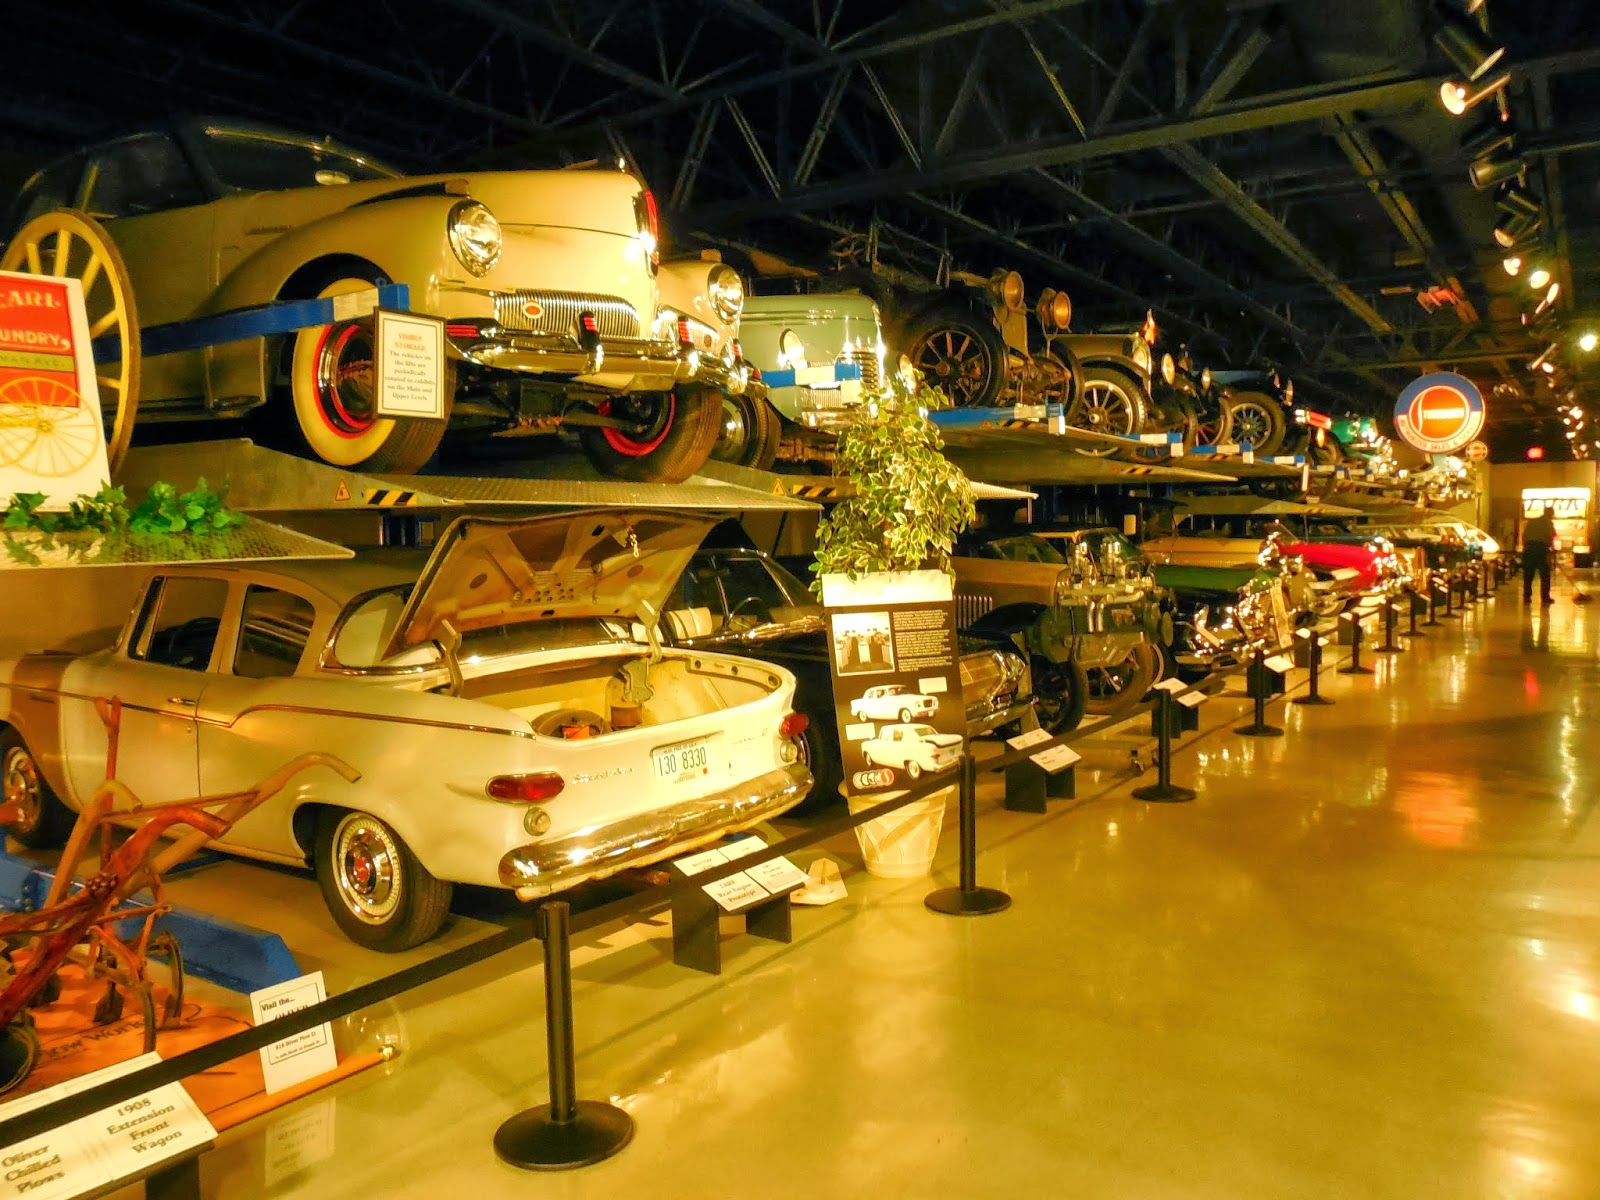 ... A Studebaker And Humvee Military Exhibit On The Right And Double Rack  Storage For Cars They Rotate Through The Upstairs Museums On The Left.